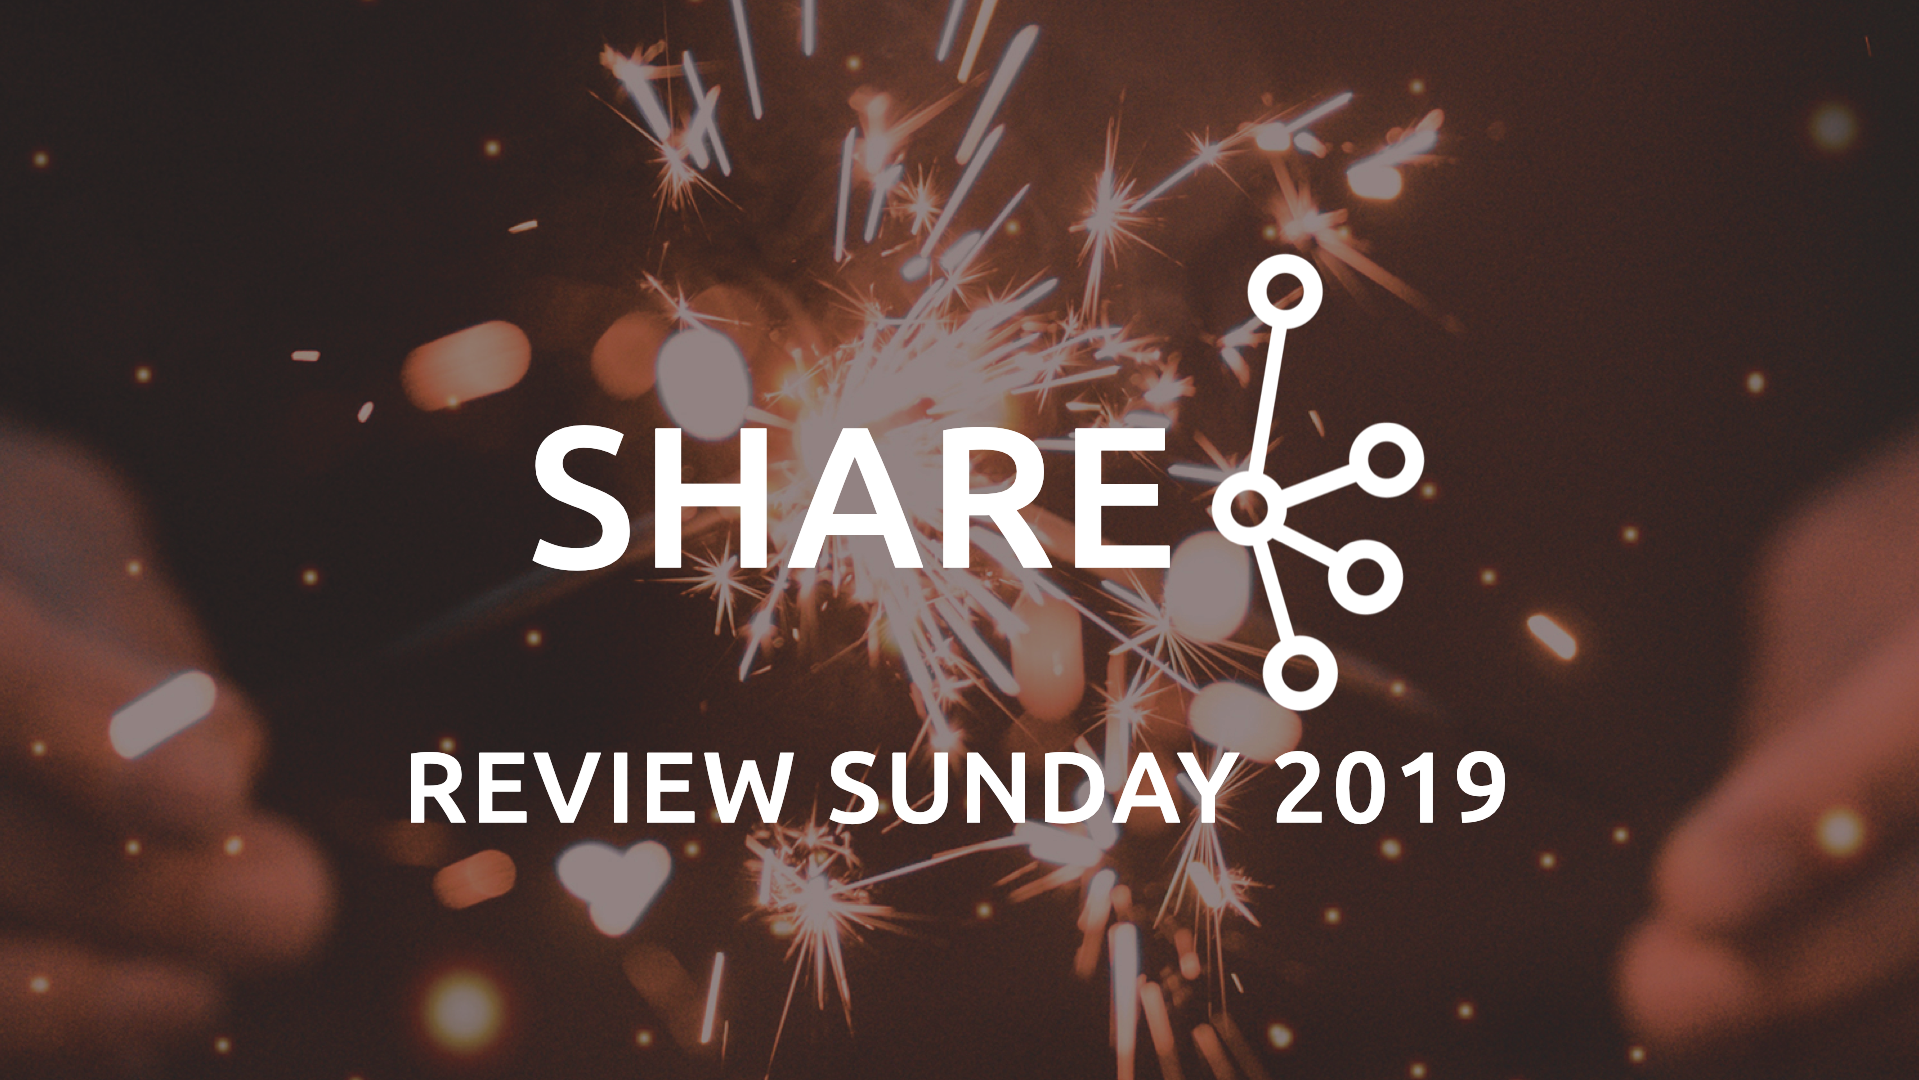 It was so good to hear about all the exciting things God has been doing amongst us in this year of 'Share'. It was a day of celebration and thanksgiving and we're expectant for all that God is going to continue doing.